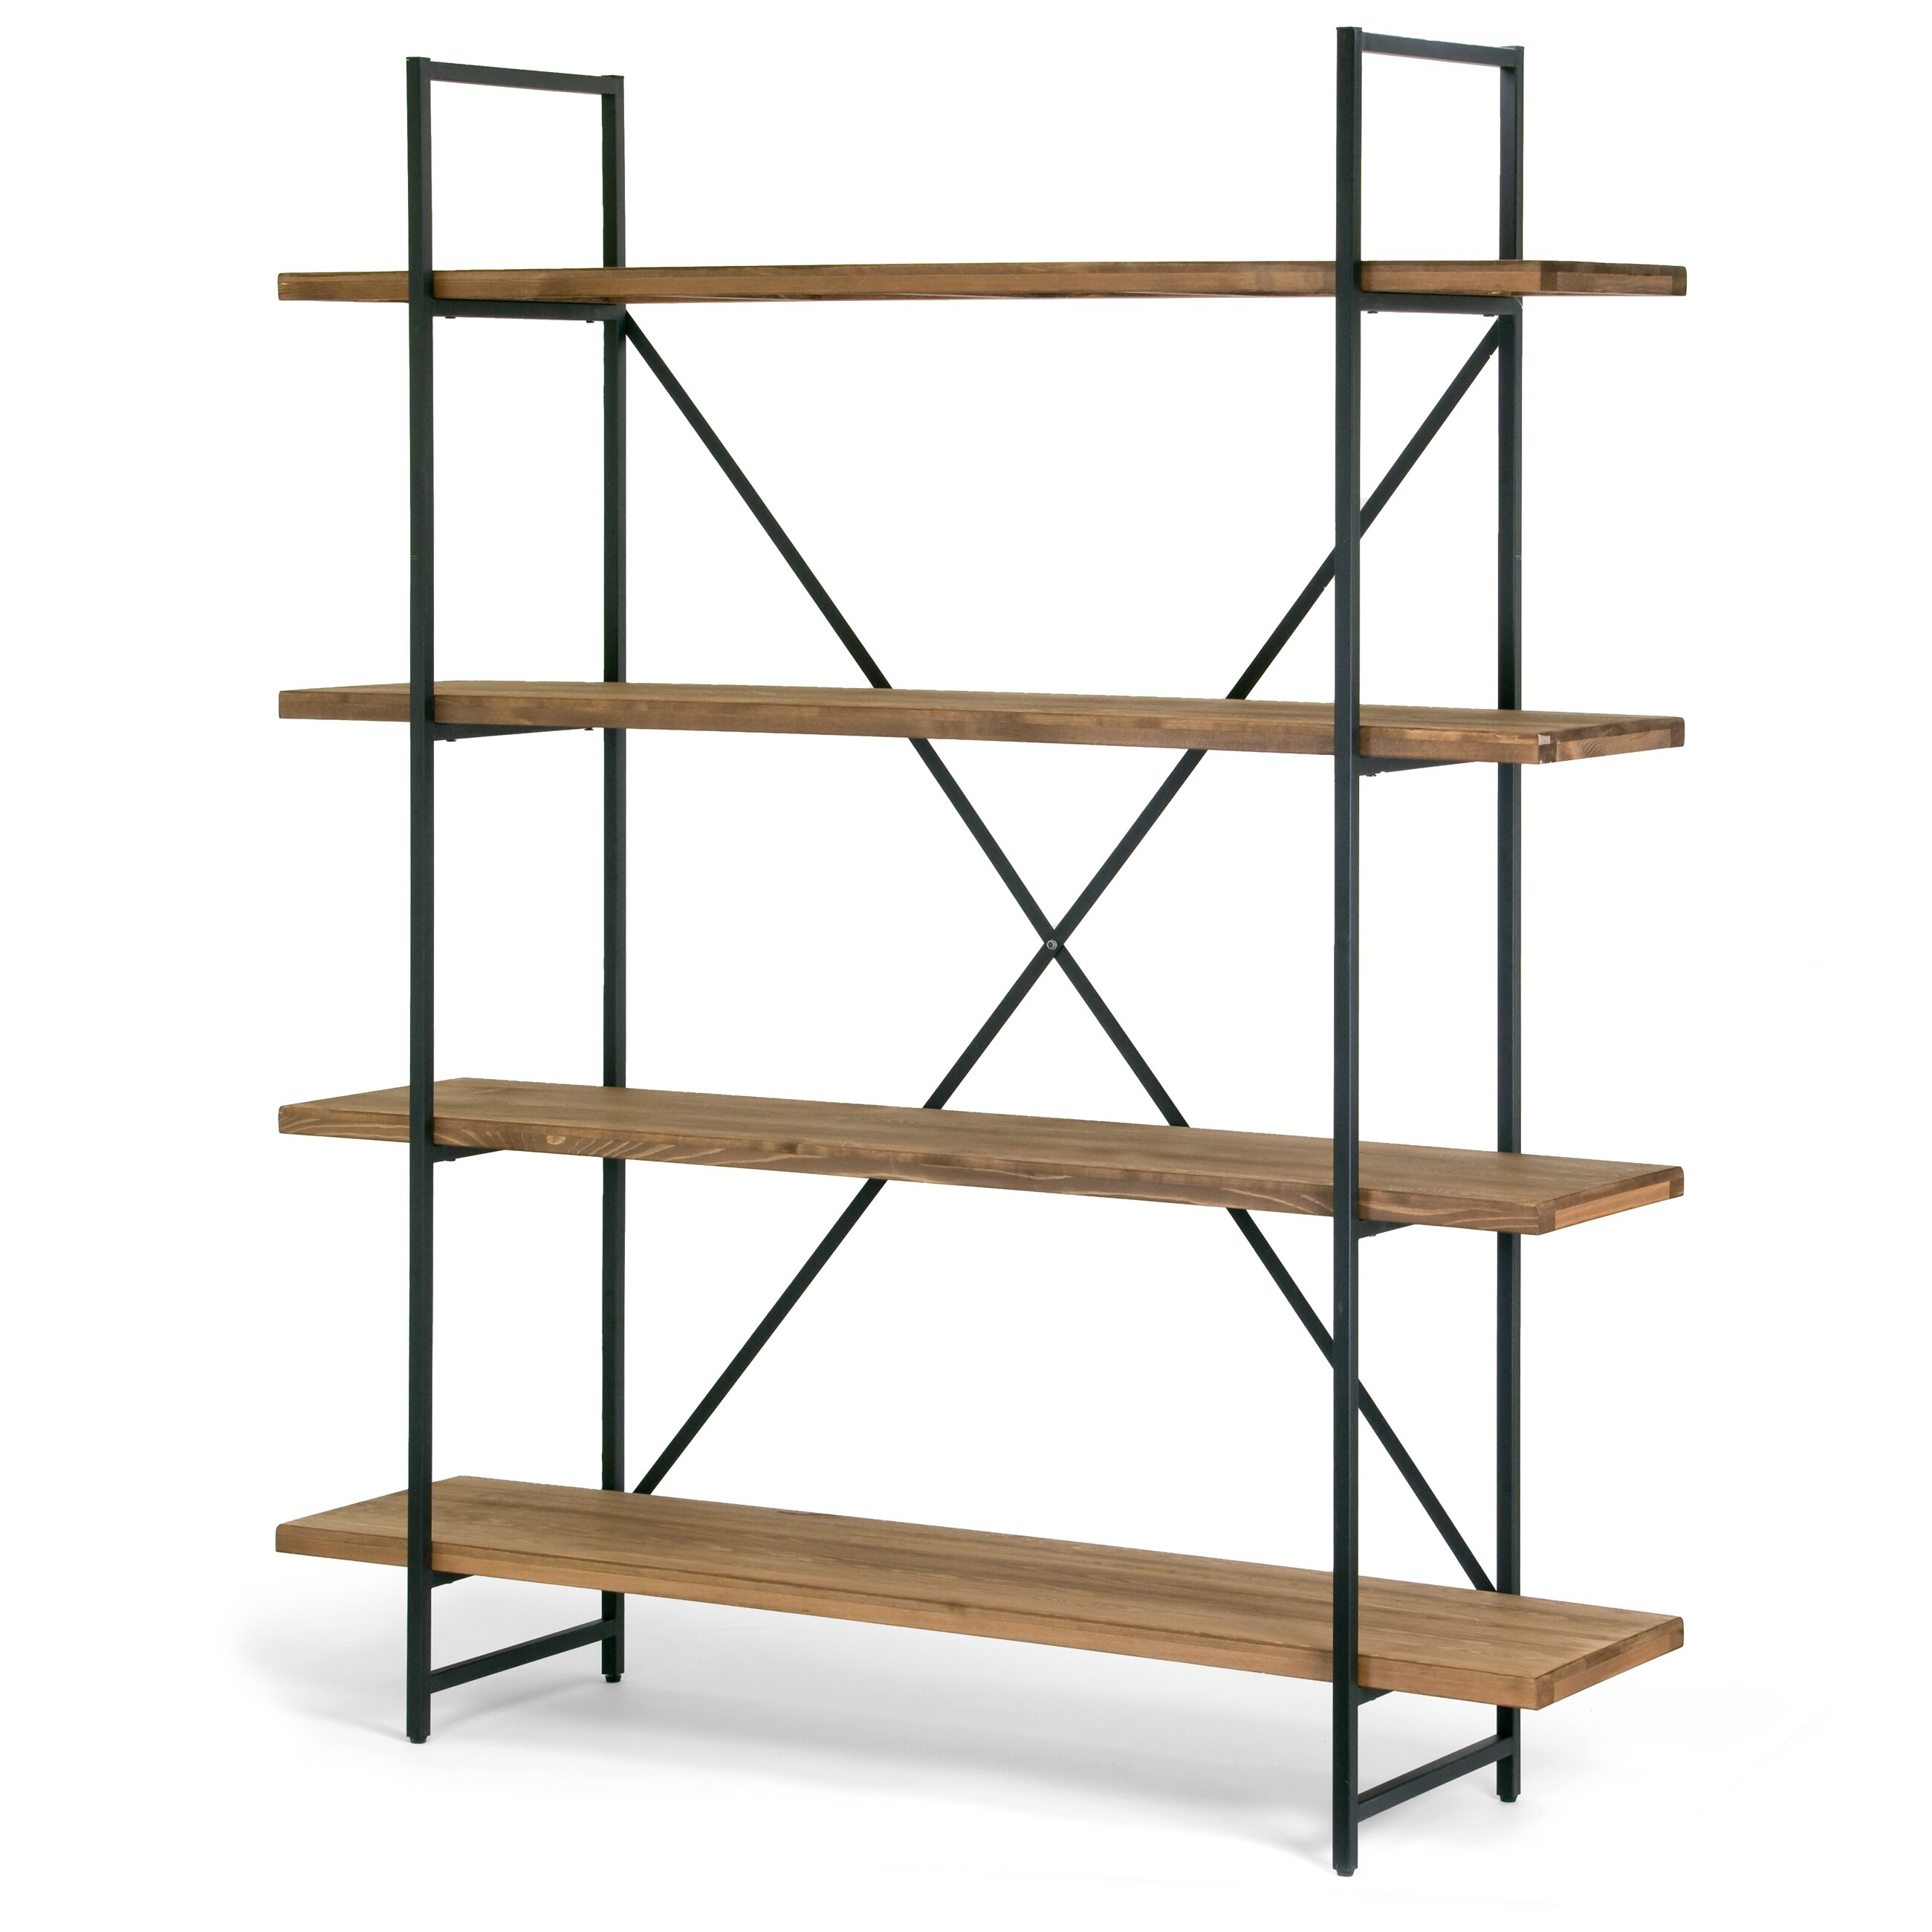 glamour home decor ailis 75 etagere bookcase reviews. Black Bedroom Furniture Sets. Home Design Ideas